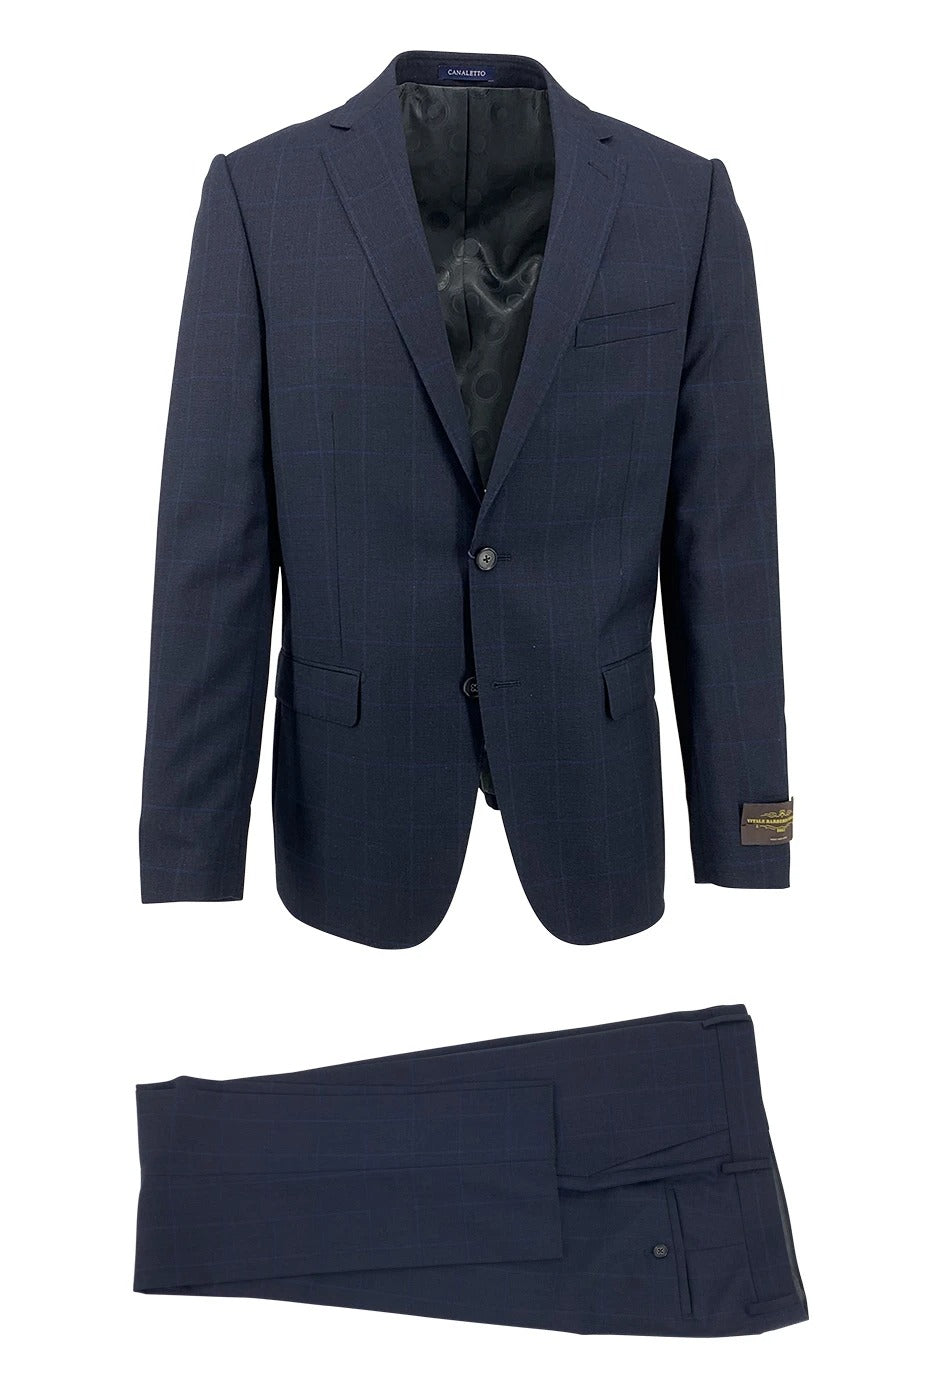 Canaletto Midnight Navy with Blue Windowpane Vitale Barberis Canonico Cloth Slim Fit Superfine Wool, Porto Suit CV187.133/2